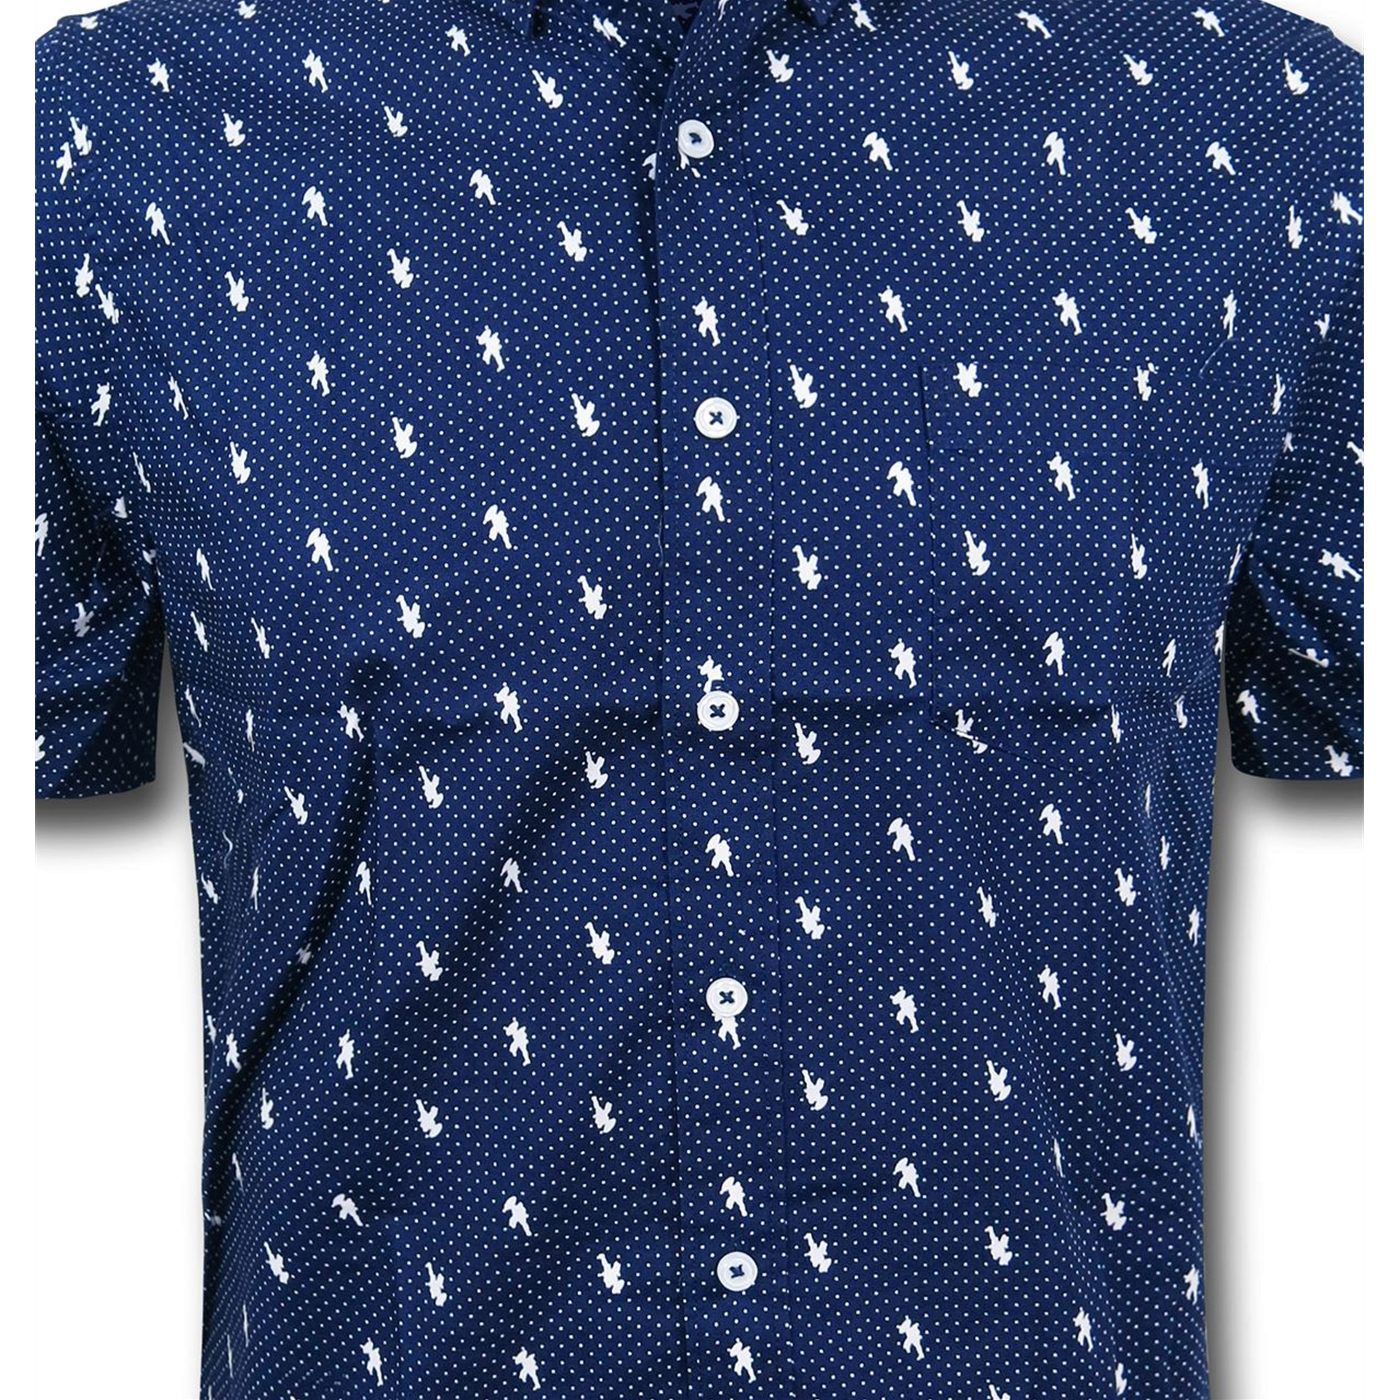 Captain America Pin Dot Men's Fitted Button Down Shirt